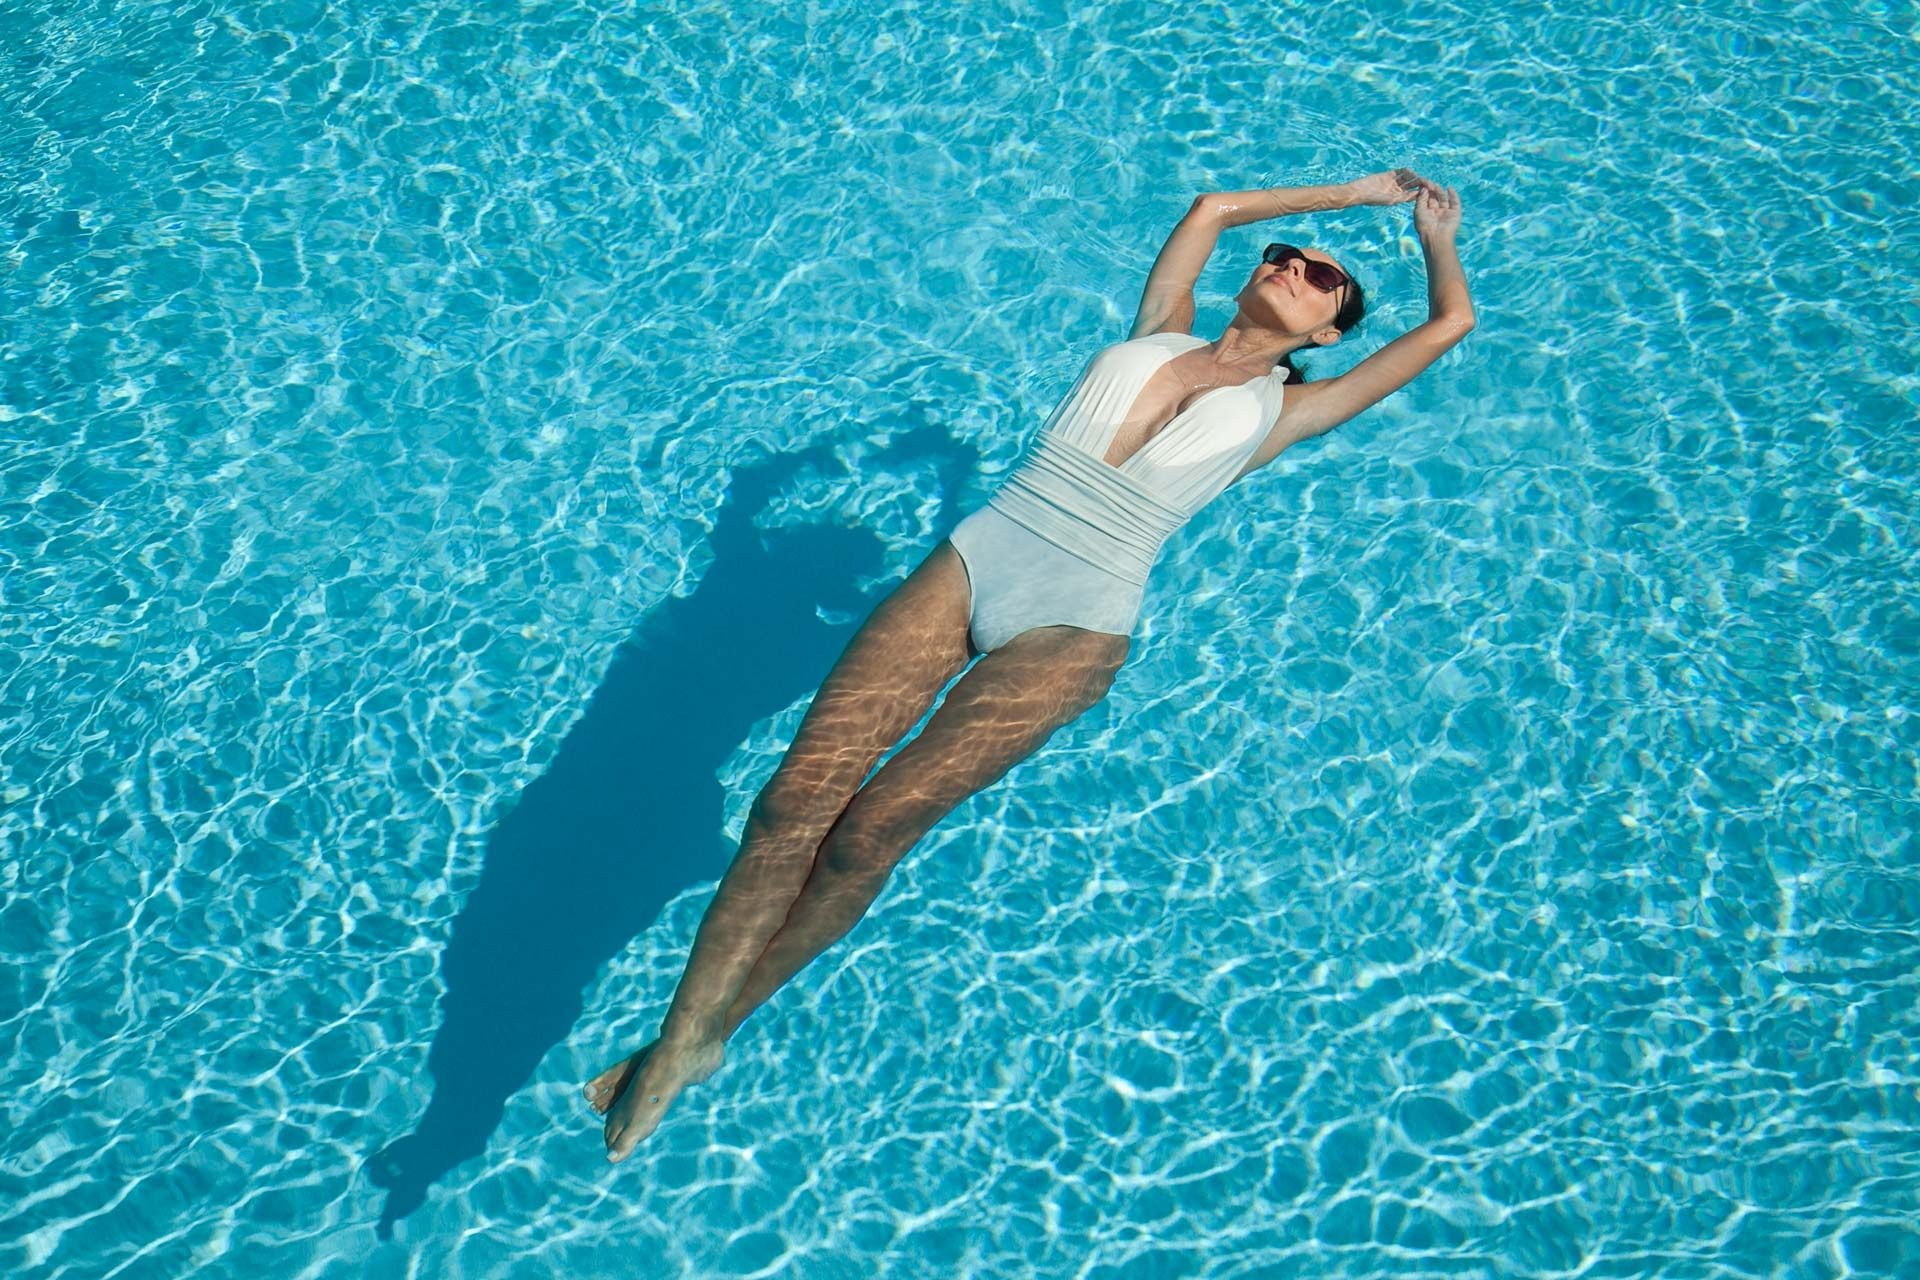 woman in one piece white bathing suit floating in pool